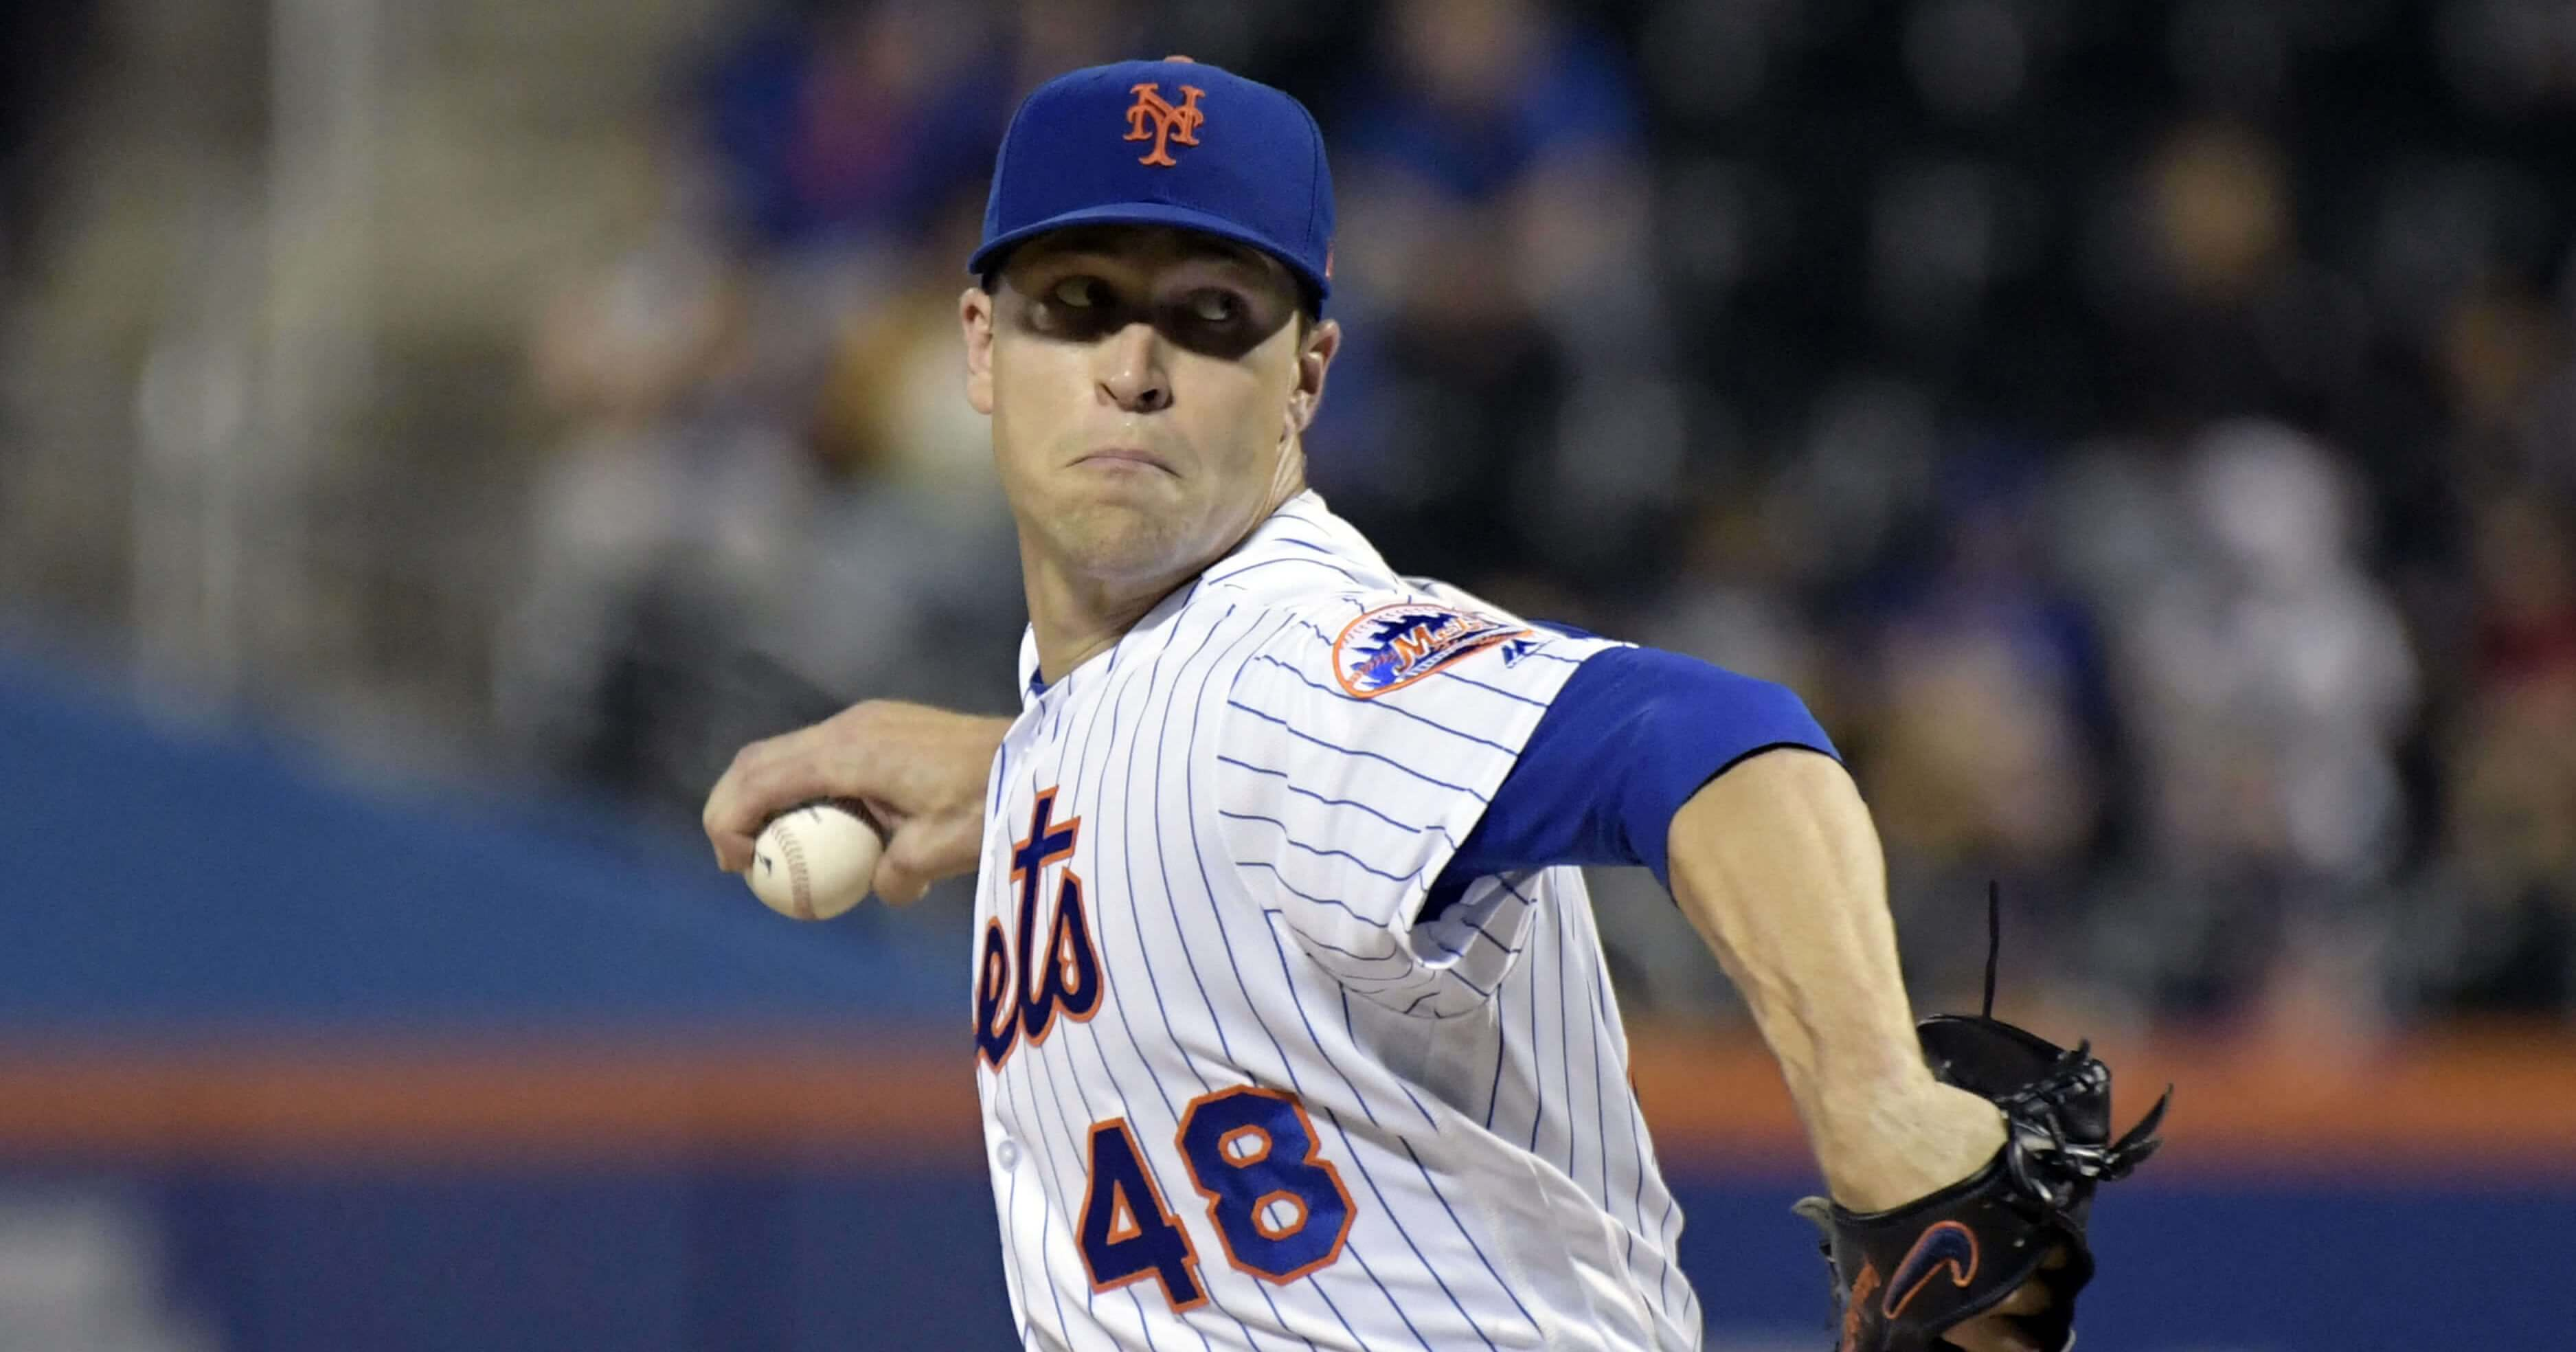 New York Mets pitcher Jacob deGrom delivers the ball in a Sept. 26, 2018, game against the Atlanta Braves in New York.